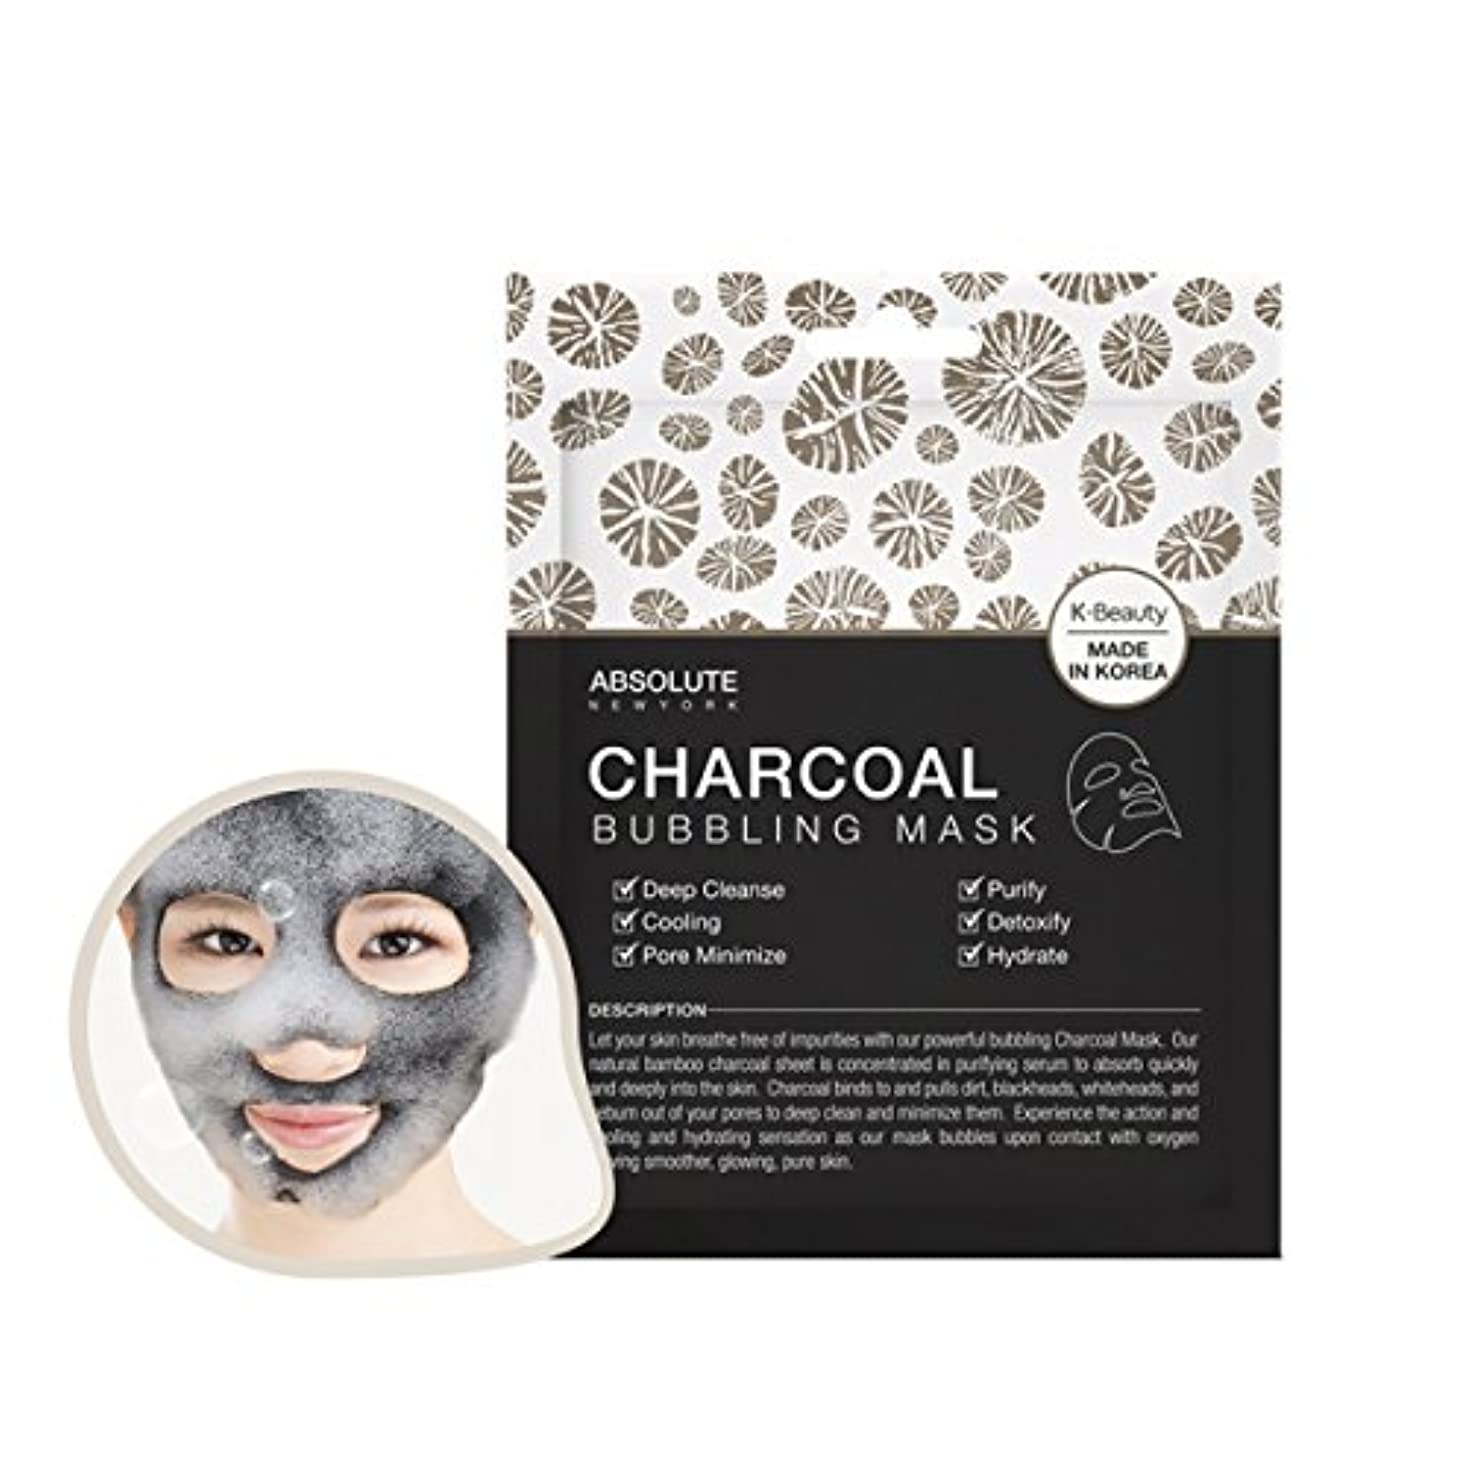 (6 Pack) ABSOLUTE Charcoal Bubbling Mask (並行輸入品)